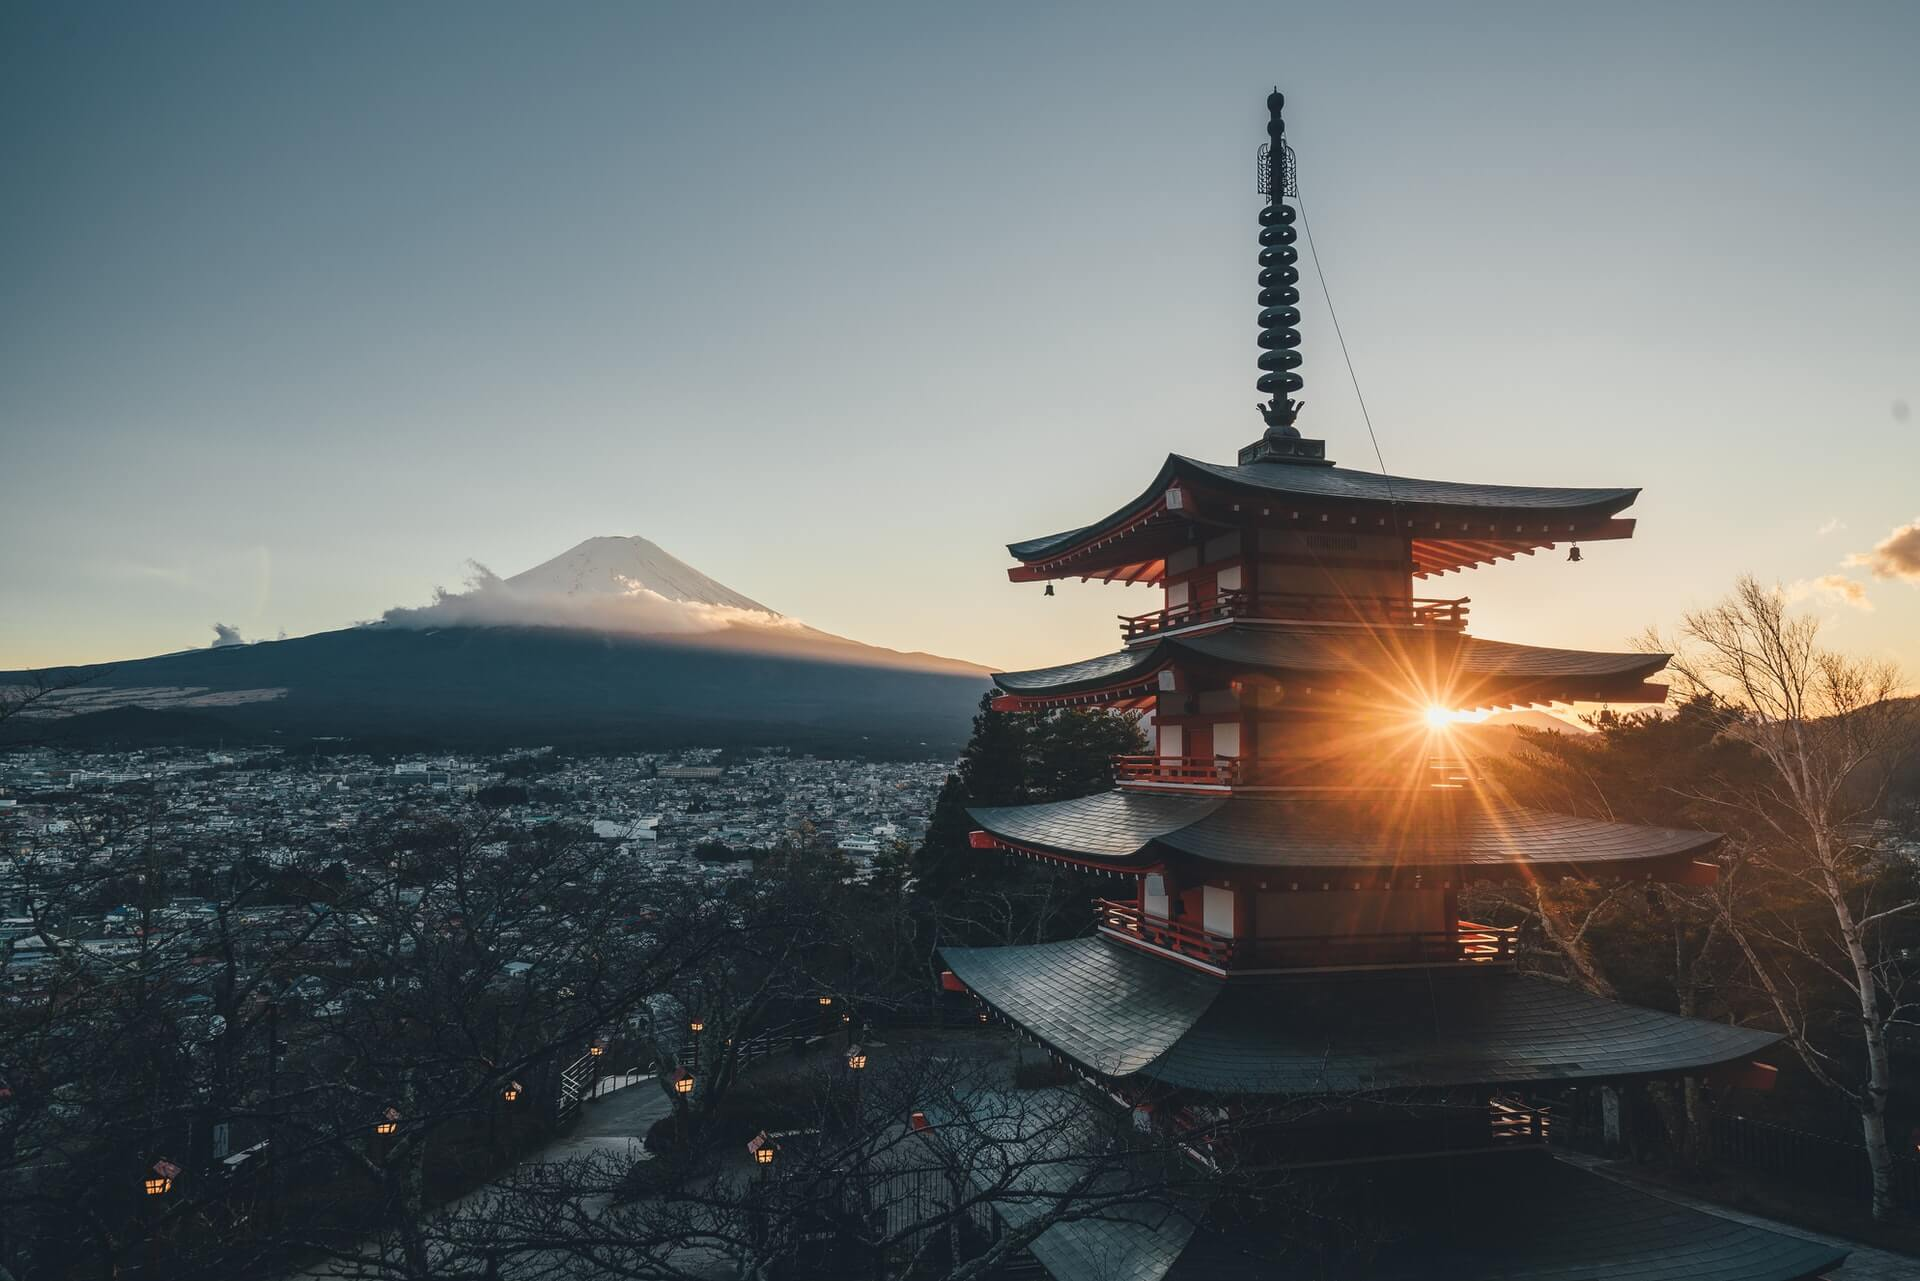 A temple and Mt Fuji in the background photographed by someone travelling in a van in Japan